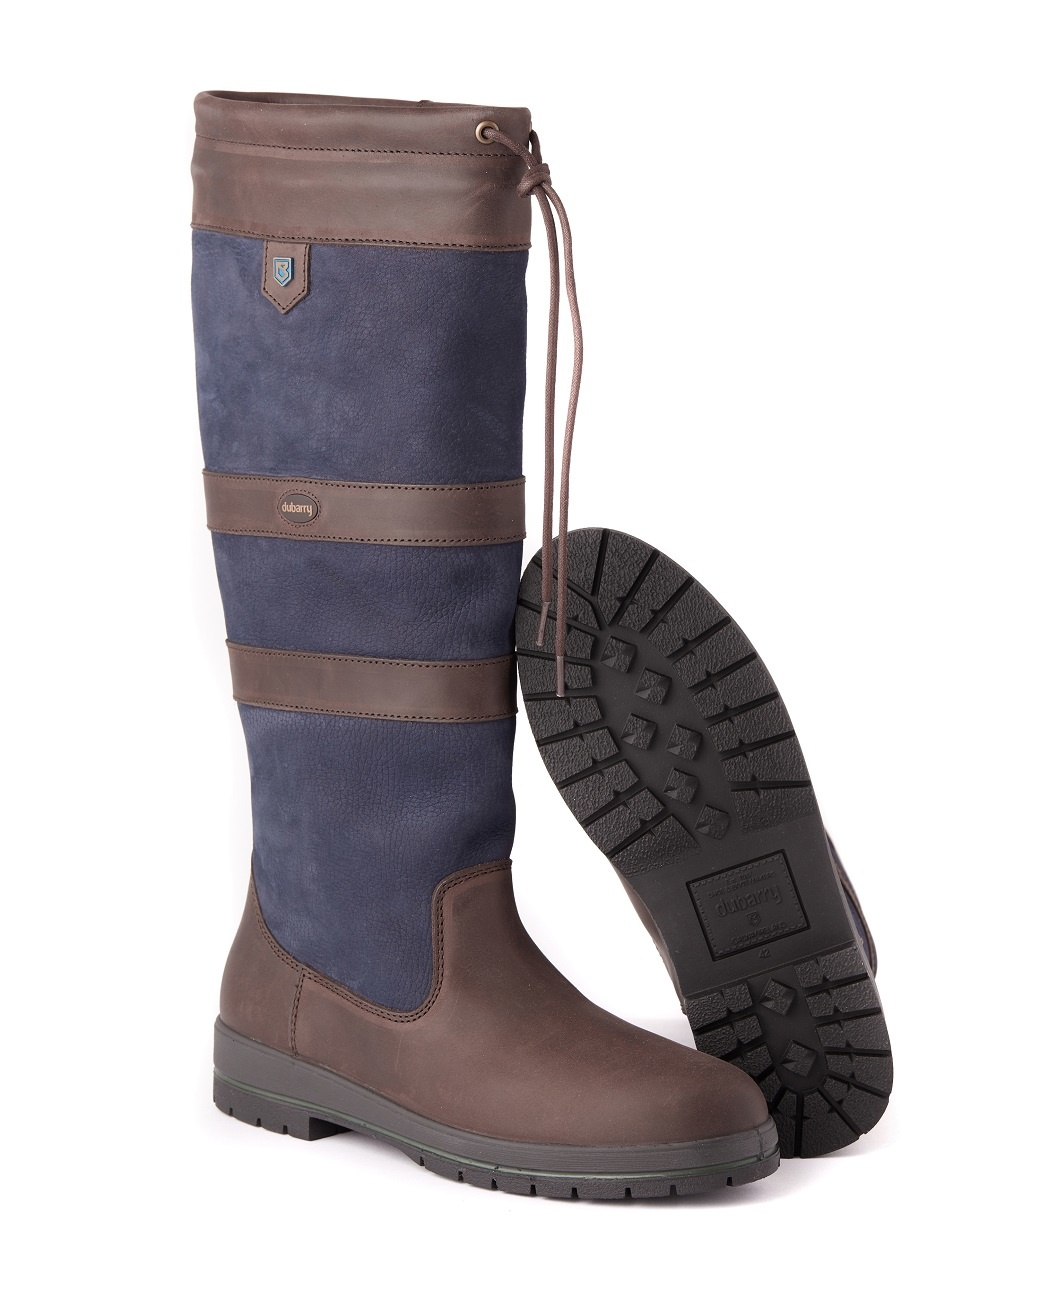 Dubarry Galway Extrafit™- Navy/Brown-2